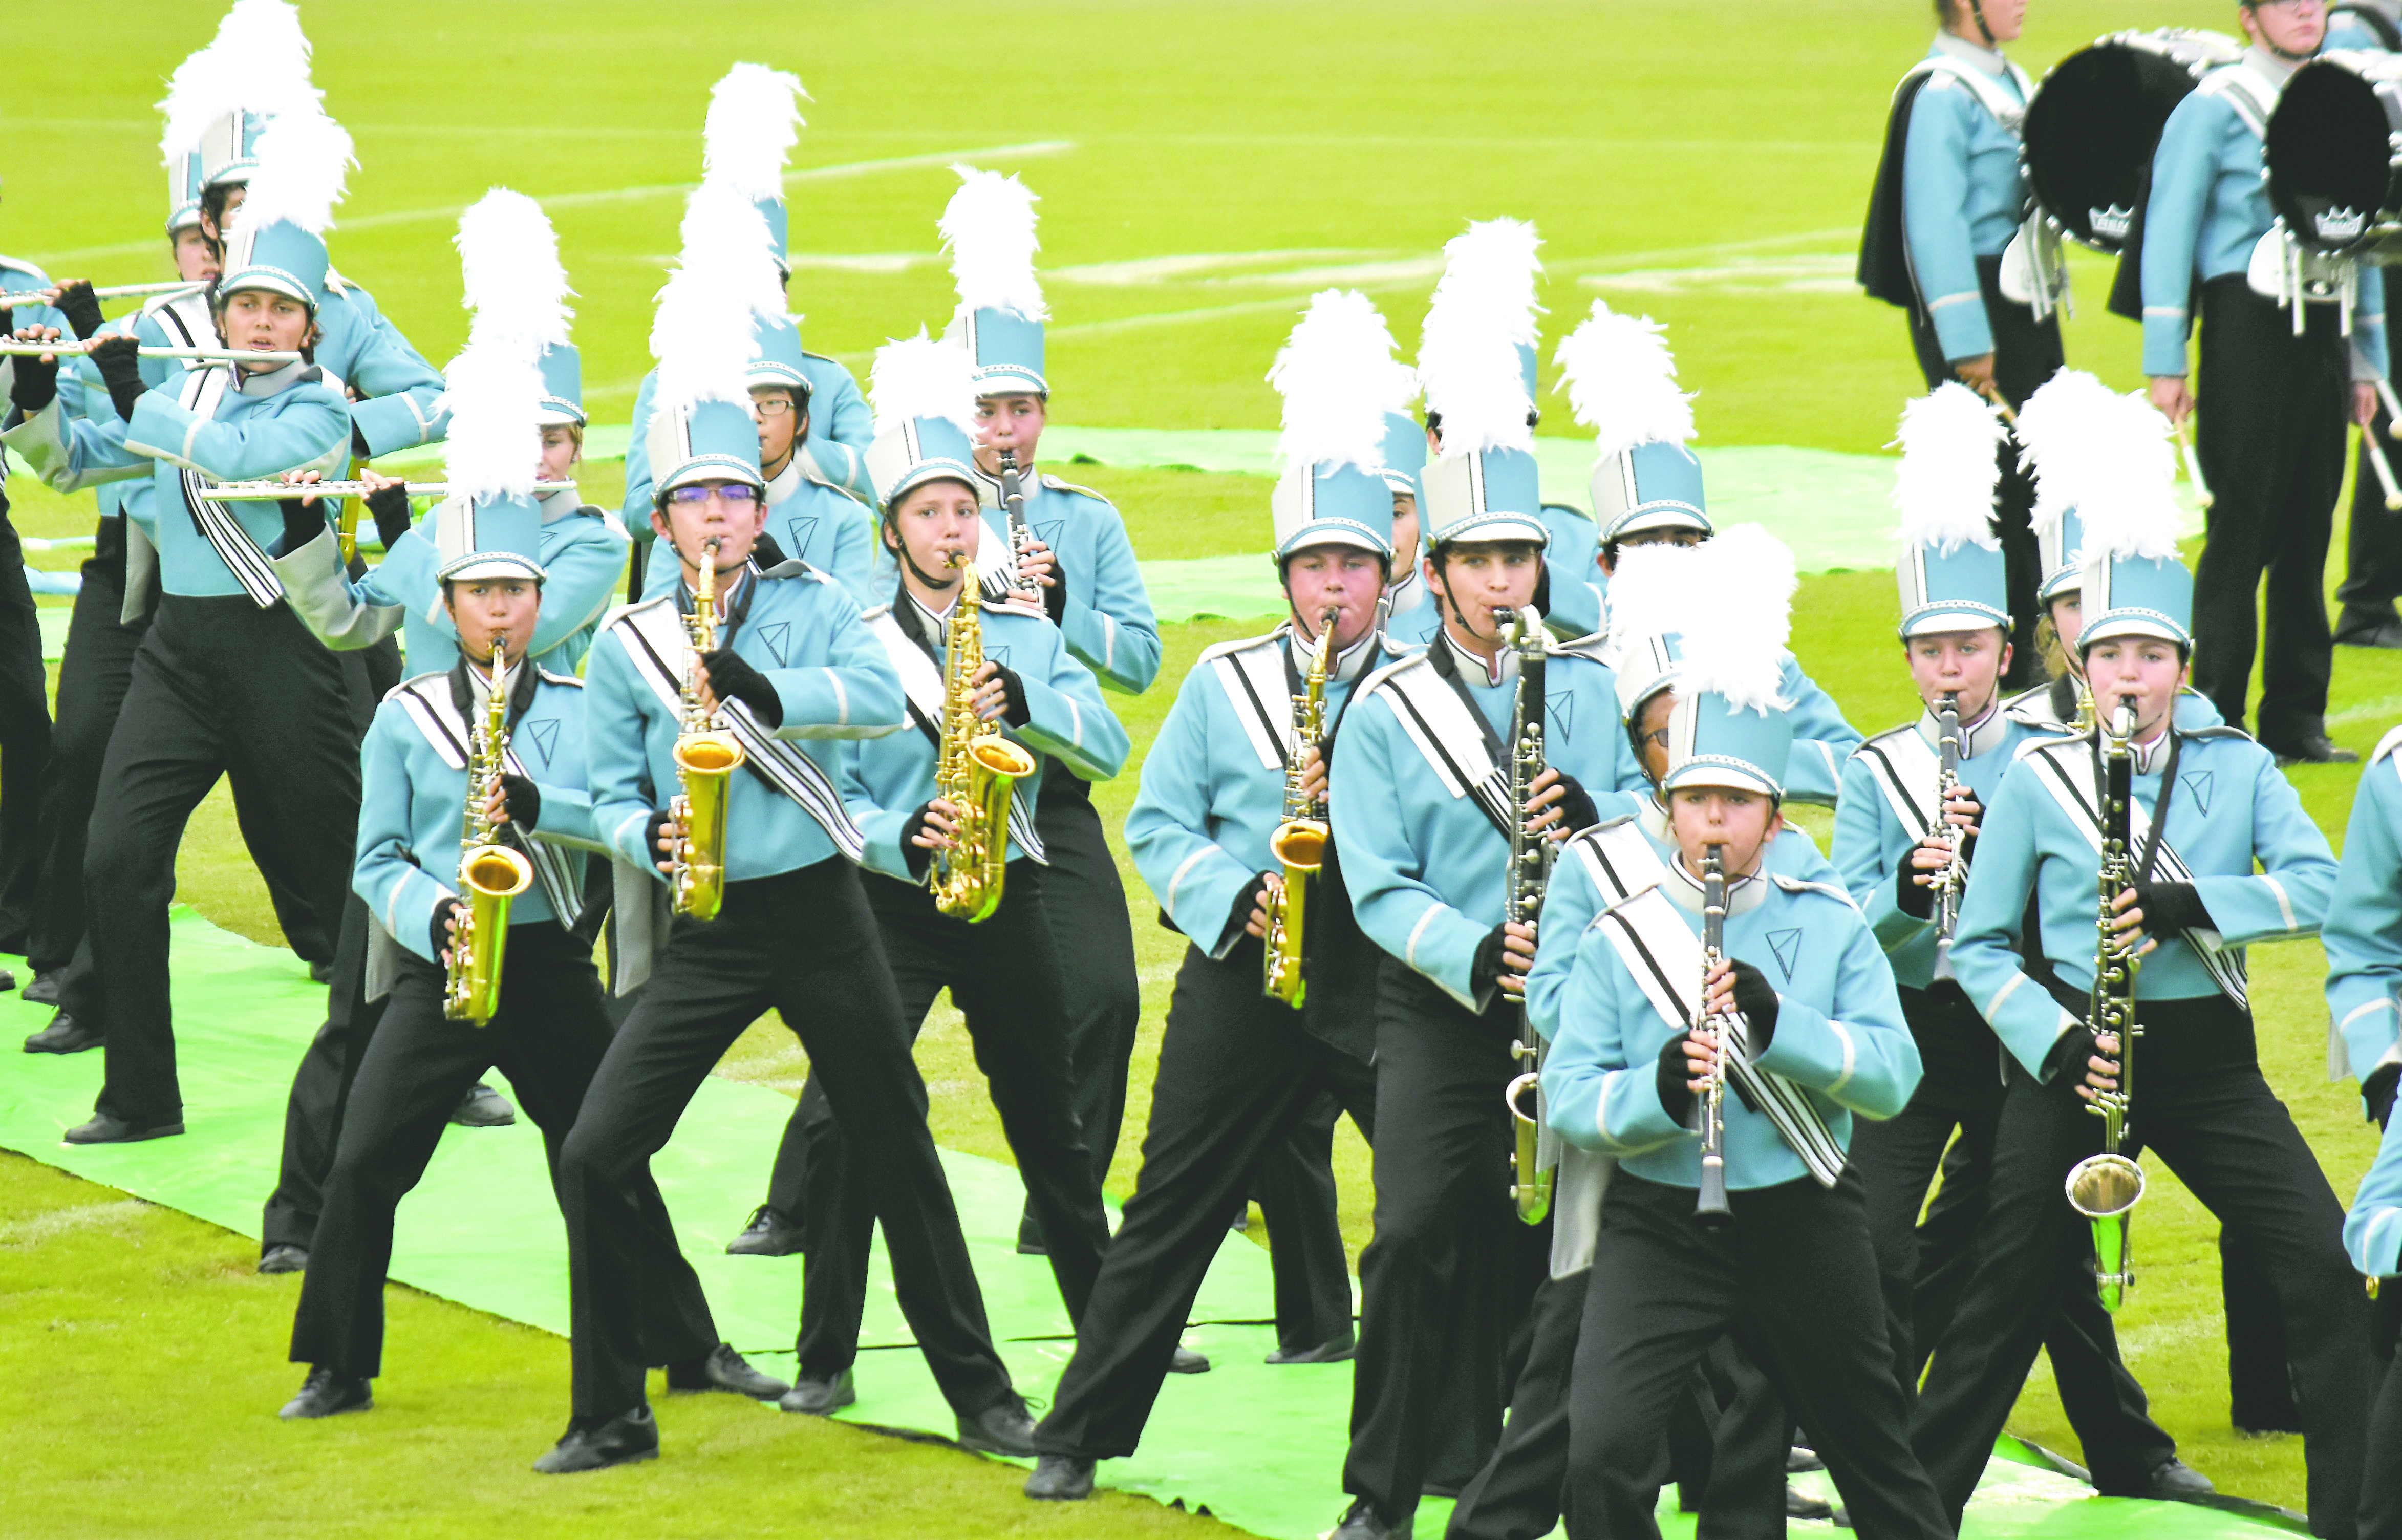 PVHS Ocean of Sound earns first-ever Grand Champion titles